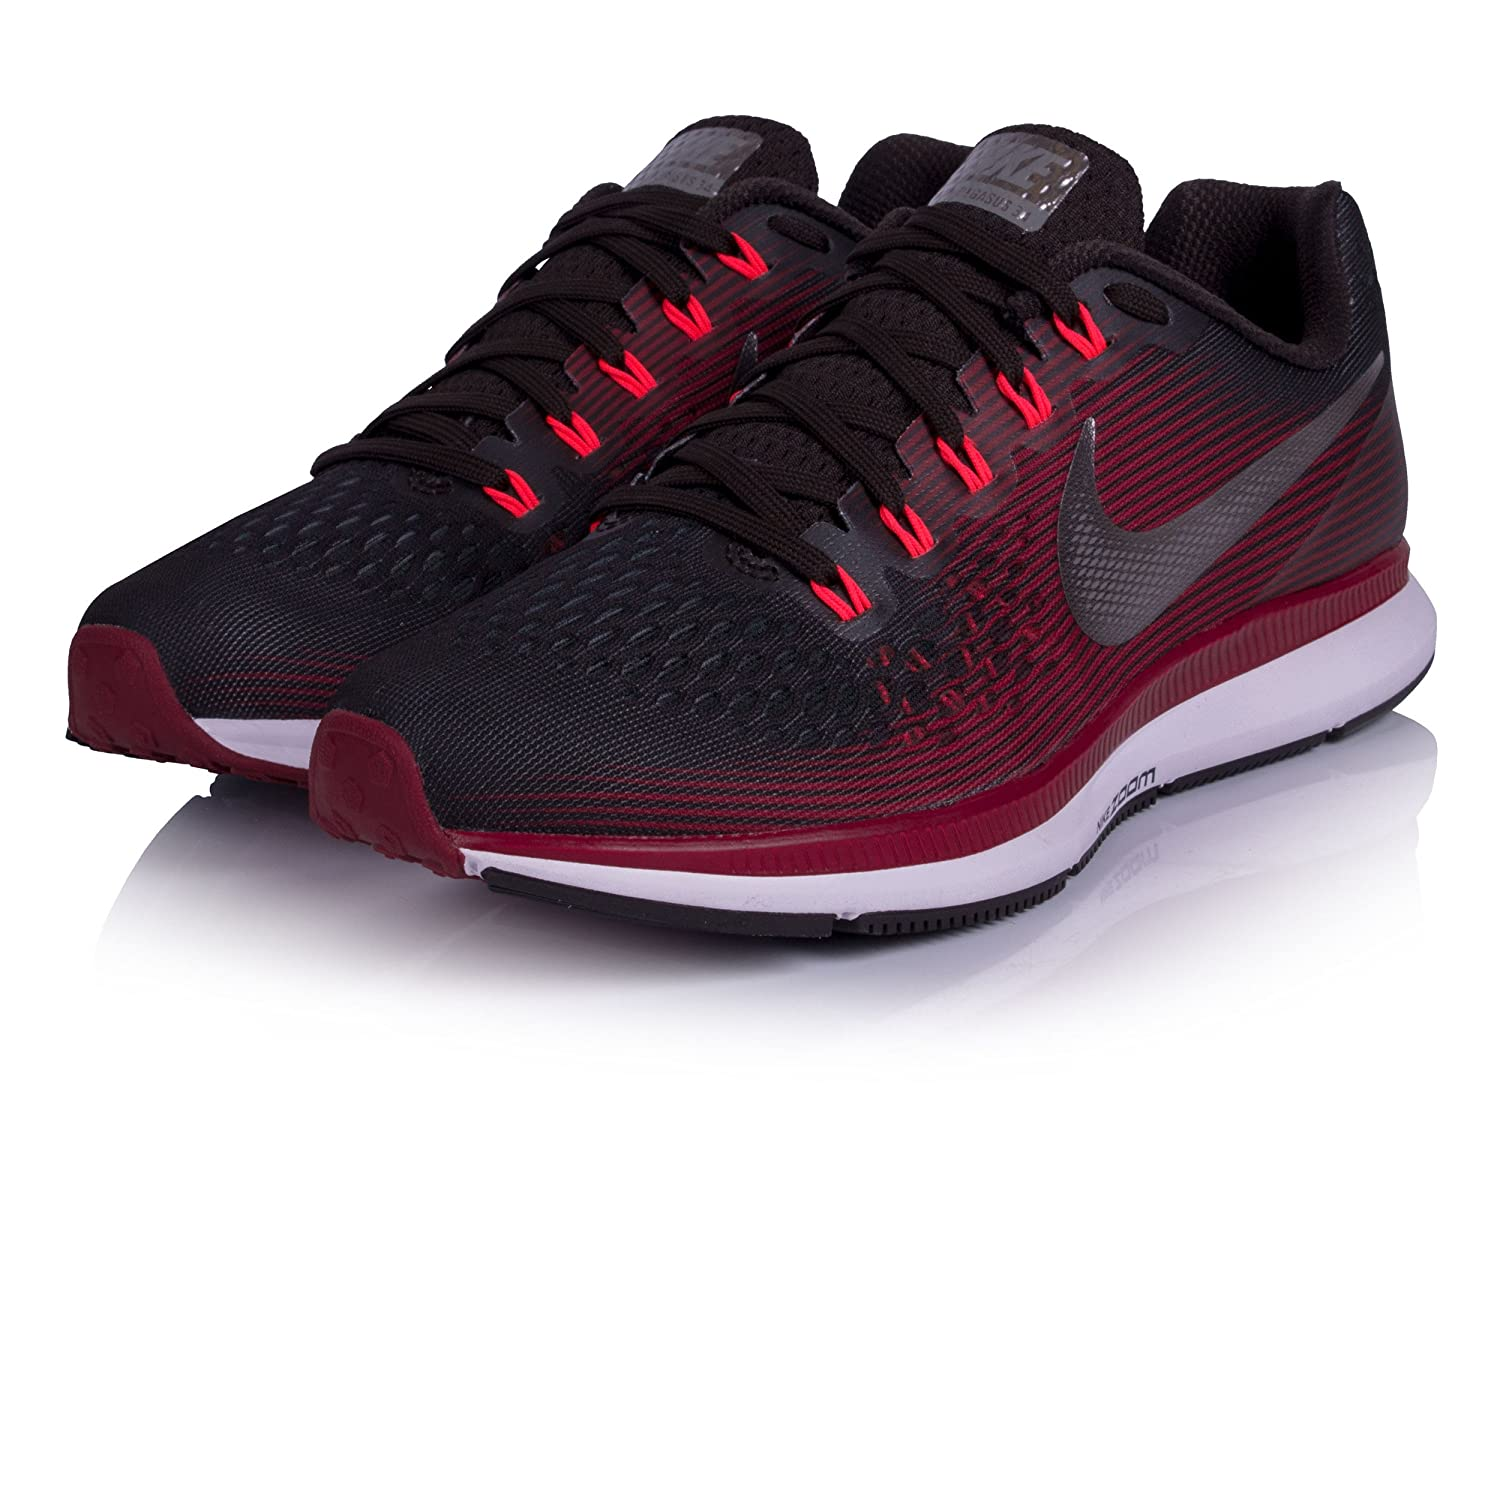 NIKE Women's Air Zoom Pegasus 34 Running Shoe B0721RP8TP 9 B(M) US|Shadow Brown/Metallic Pewter/Rush Maroon